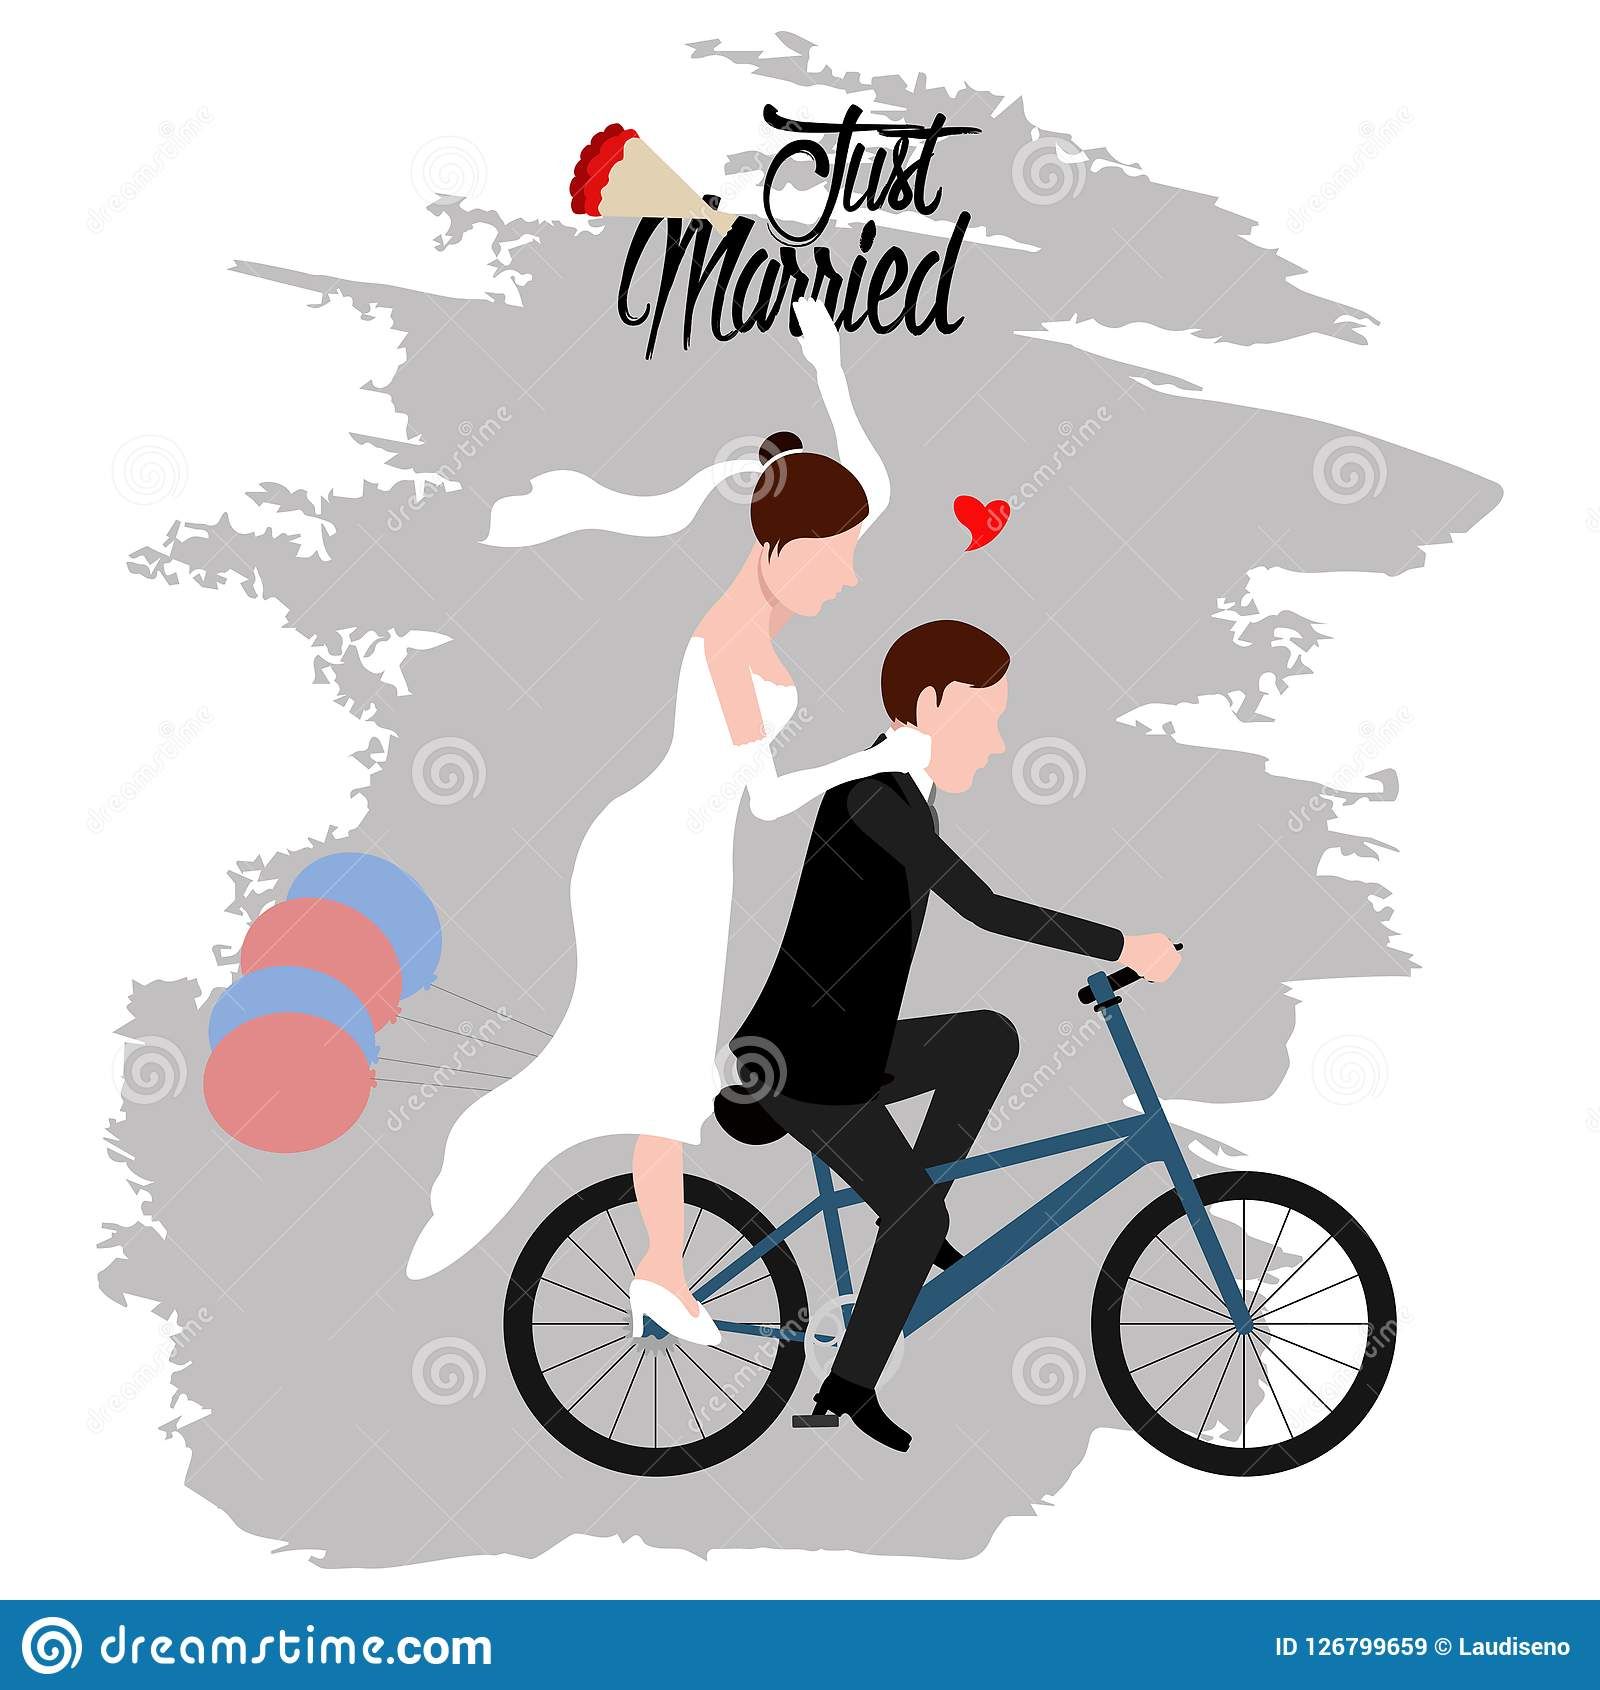 Groom And Bride On A Bicycle. Just Married Couple Stock